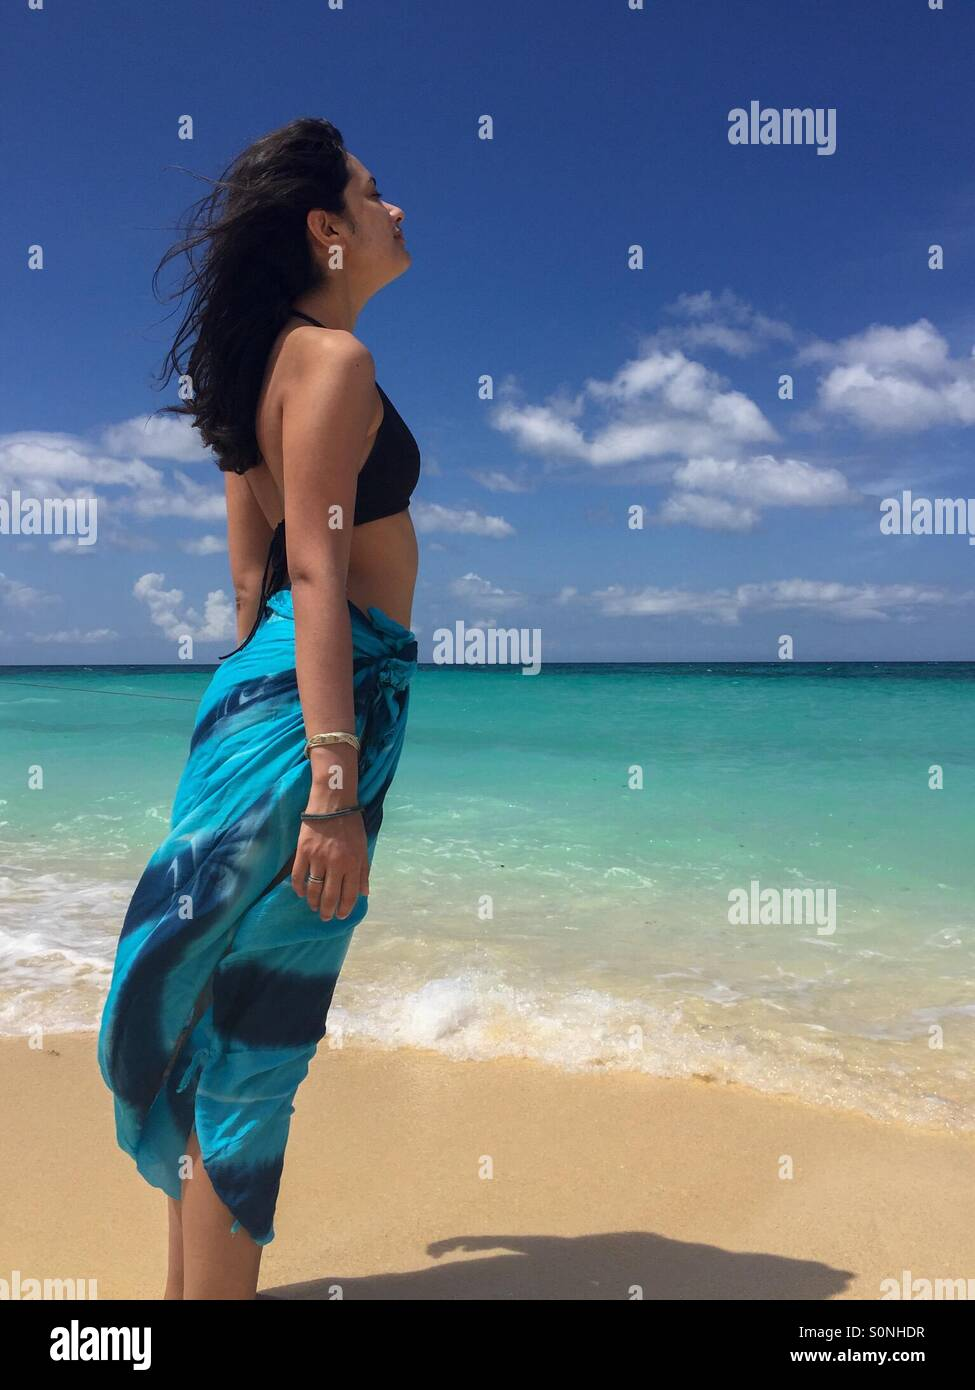 Woman breathing air - Stock Image